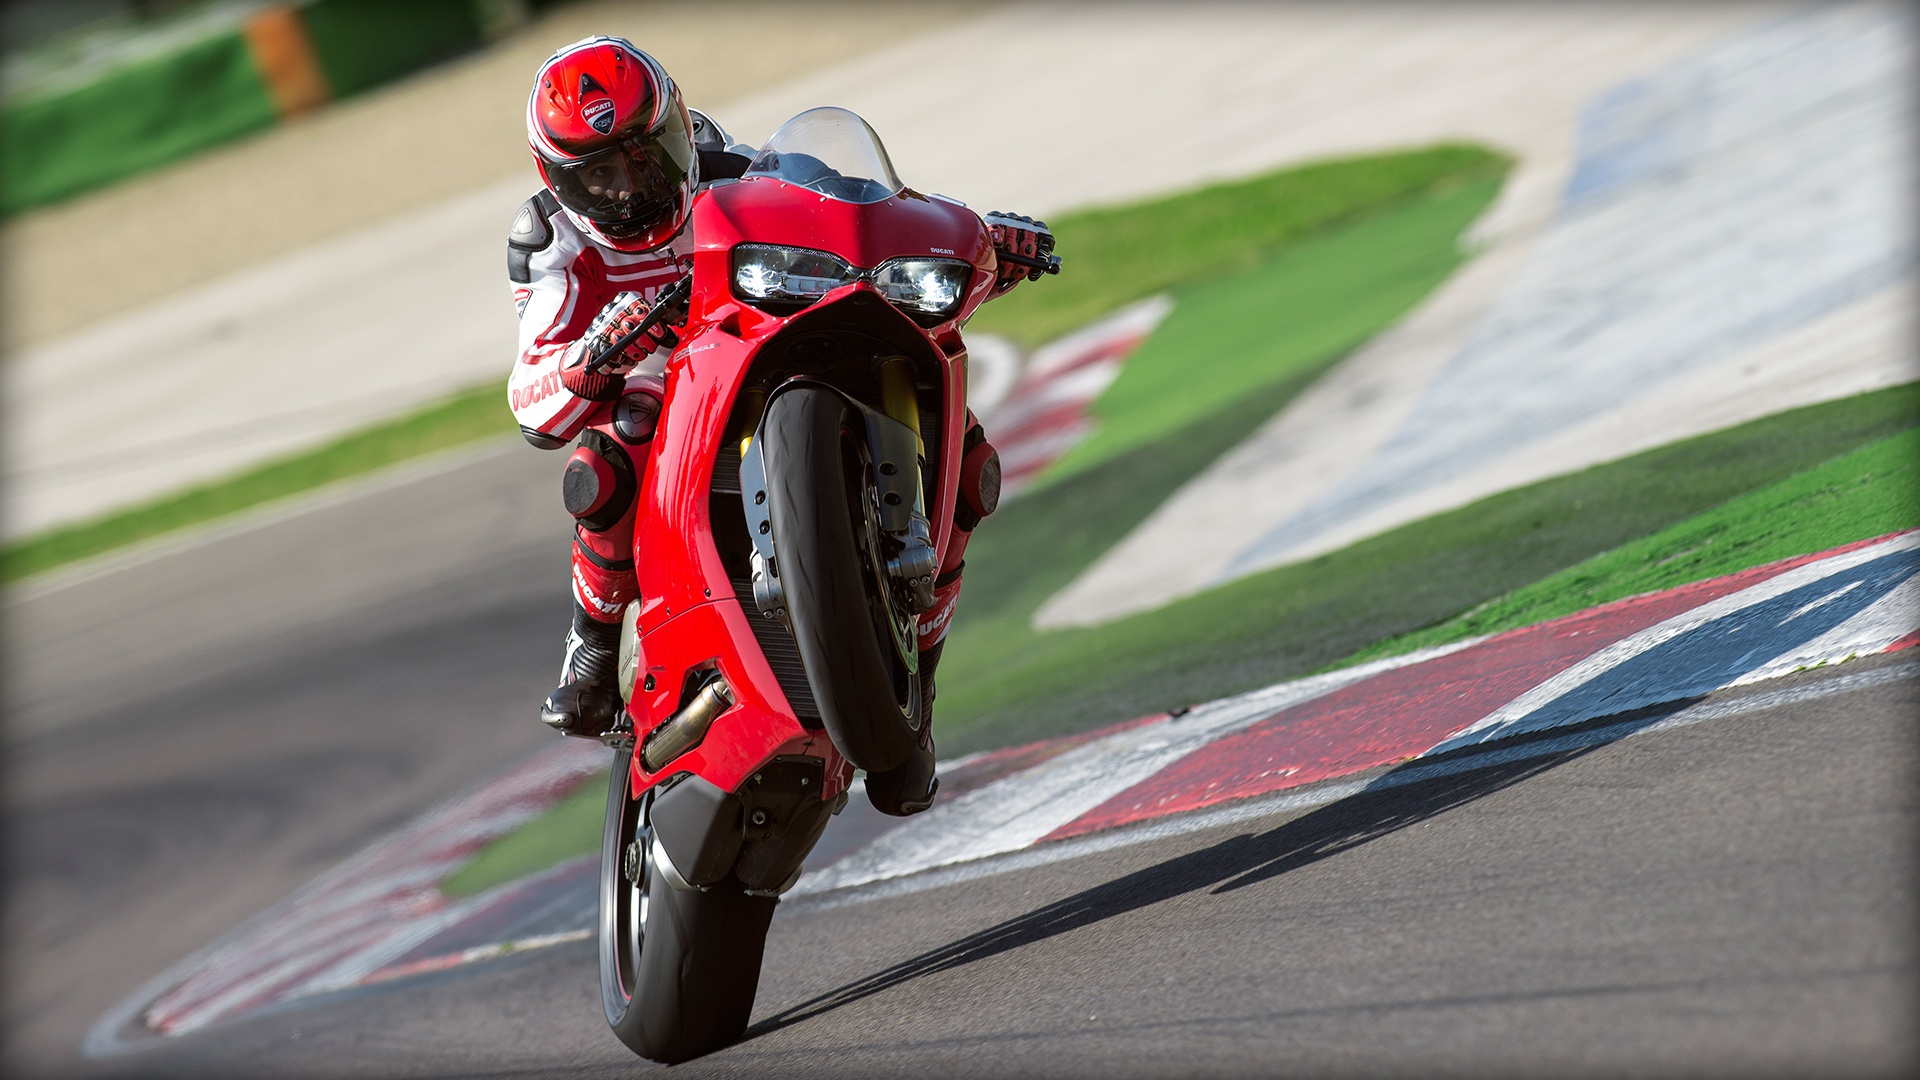 Ducati 1299 Panigale S 4k Wallpapers: HD Ducati 1299 Panigale S Wallpapers